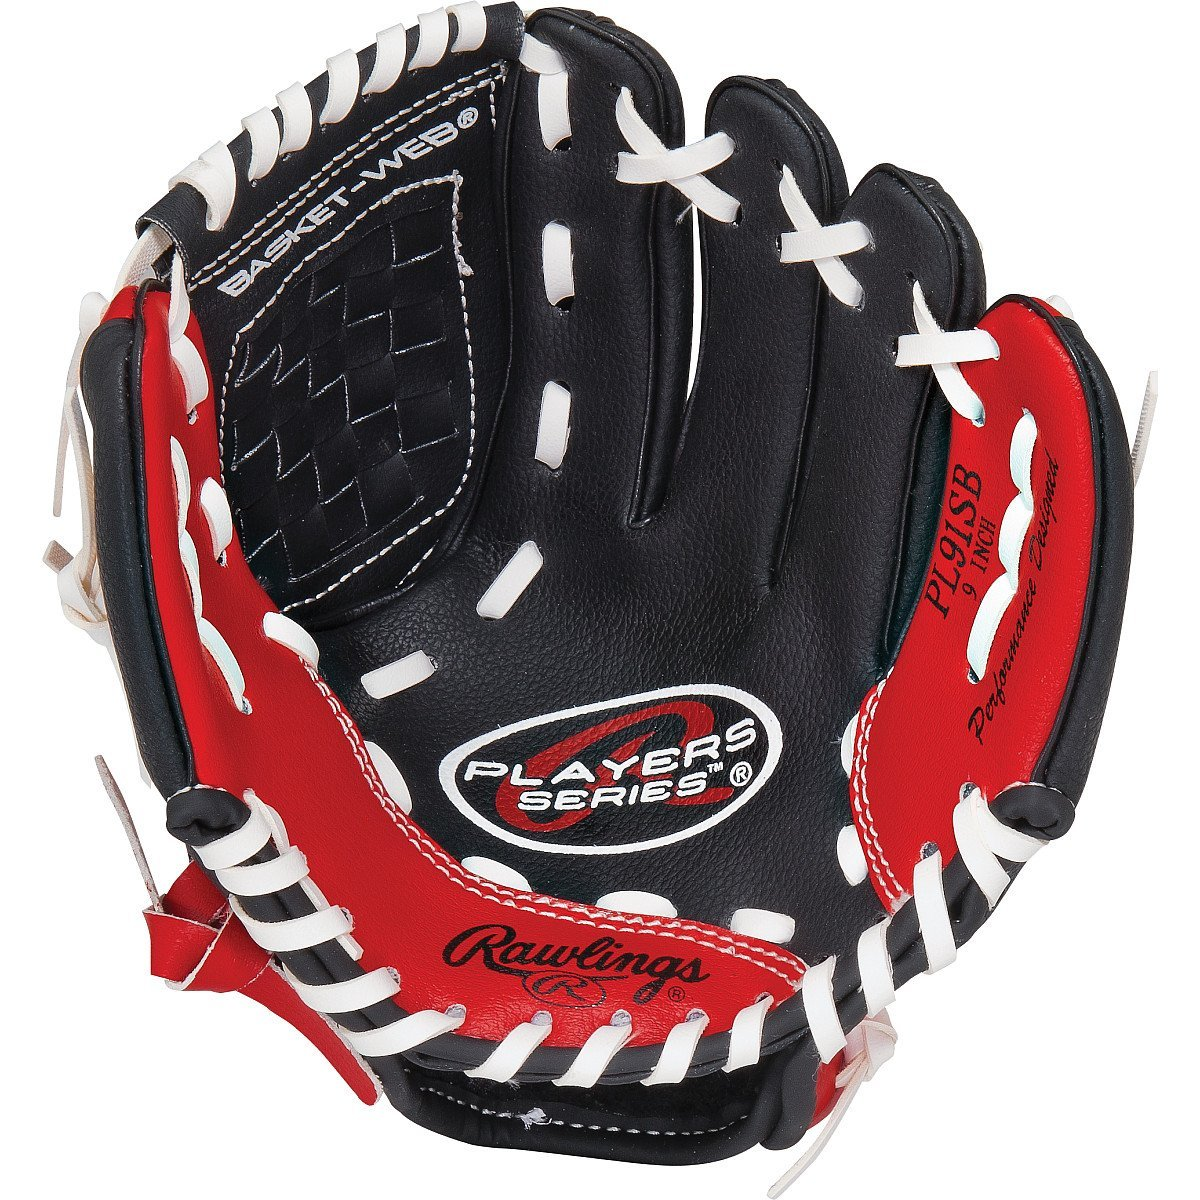 Rawlings Player Series T-Ball Pattern, Right Hand Throw, 9oz PL91SB-12/0